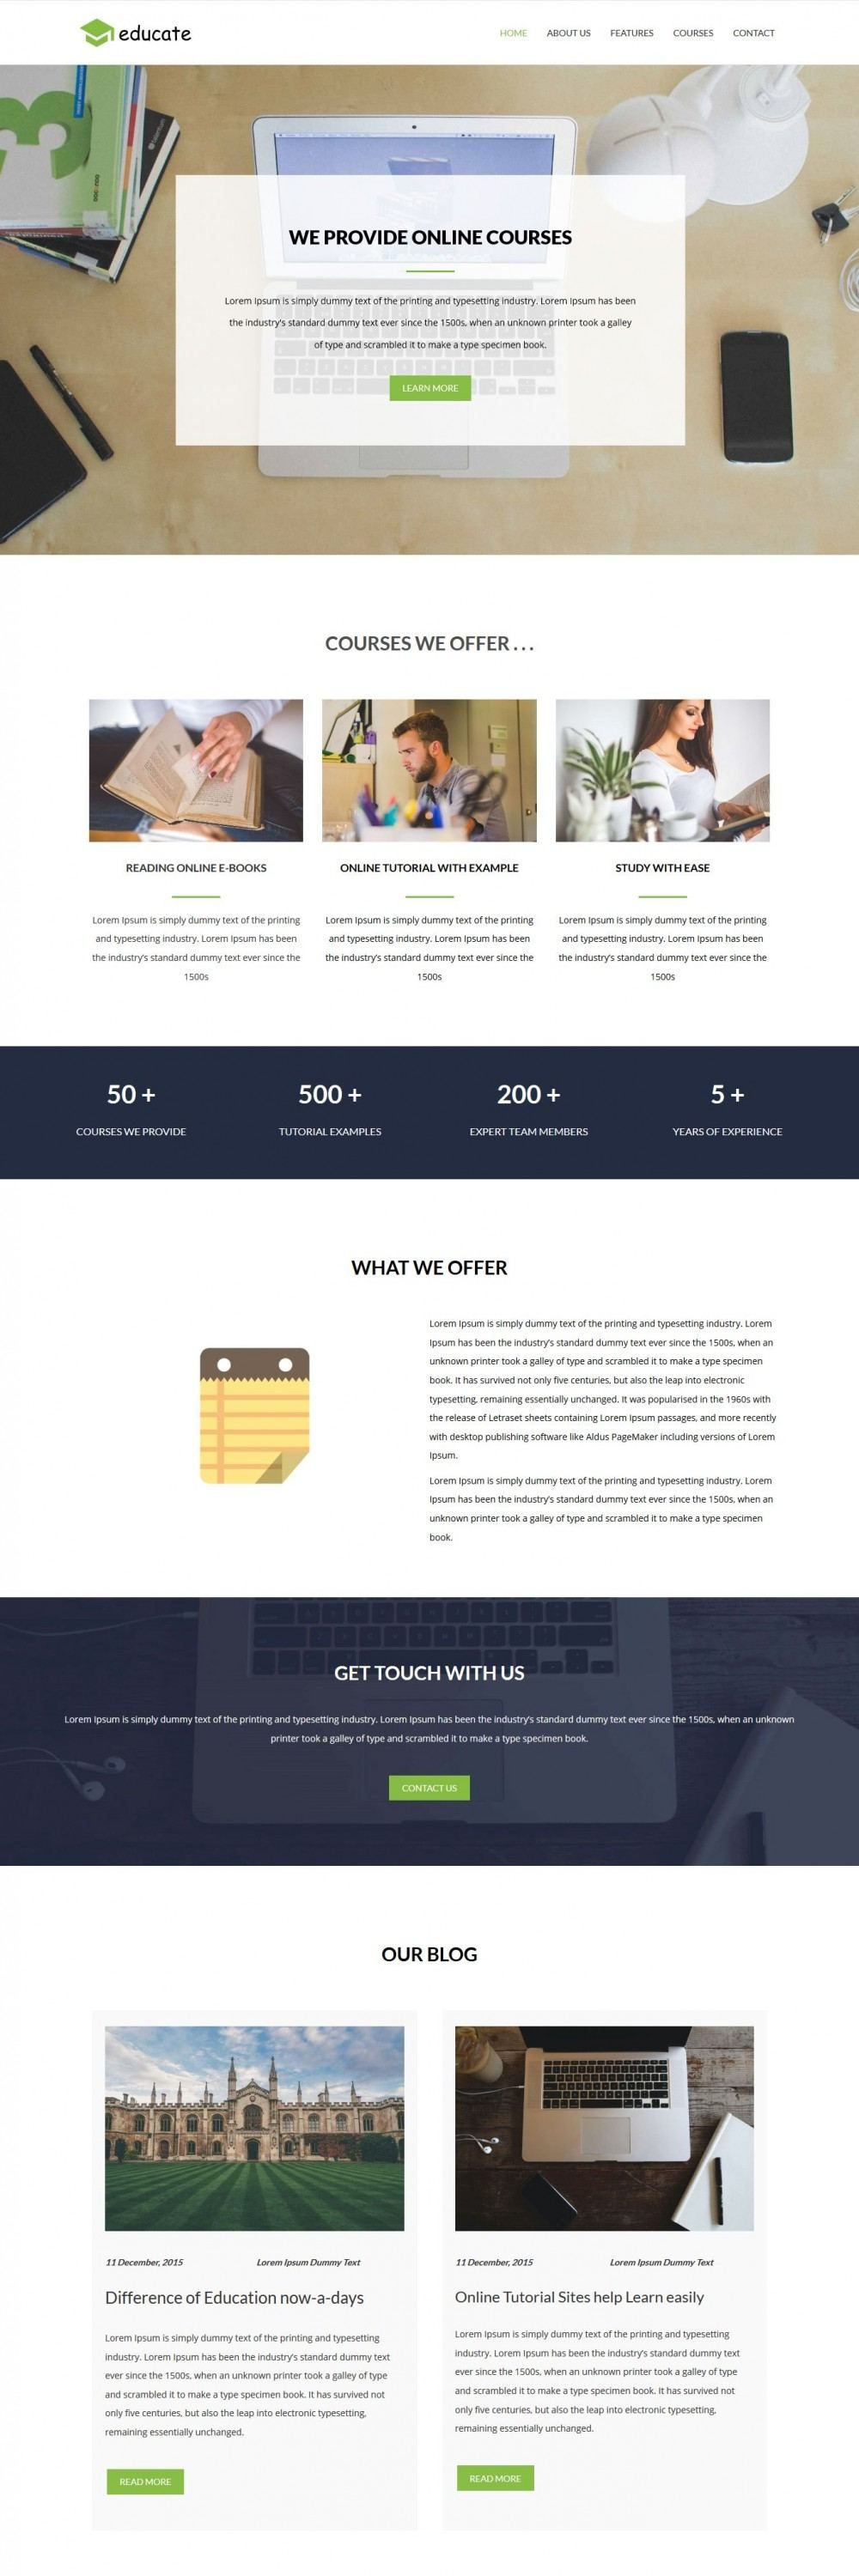 Educate - Learning Online Education Joomla Template